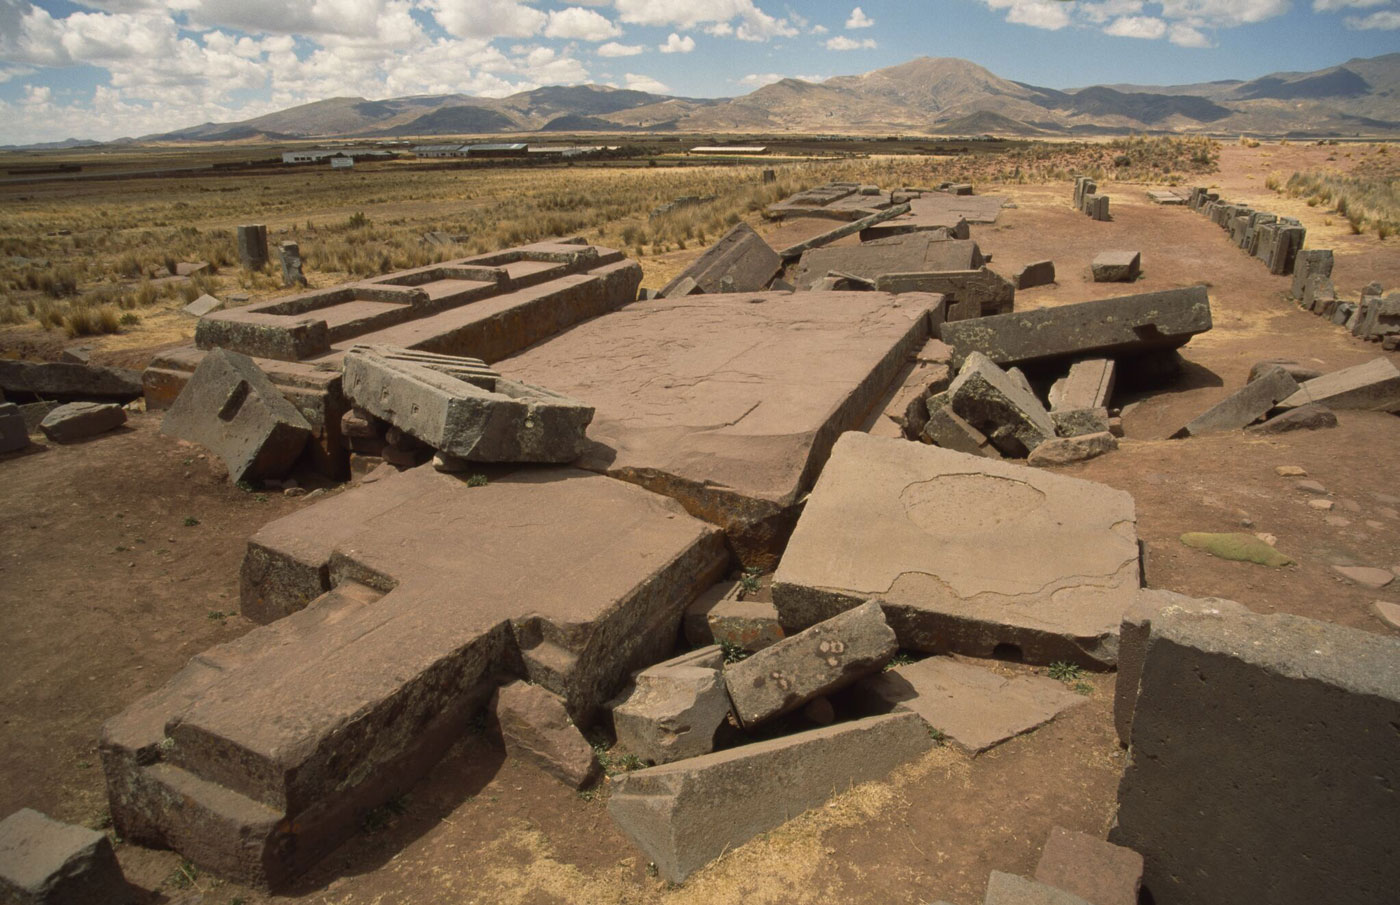 Pumapunku Temple: Ellis Island of the Tiwanaku